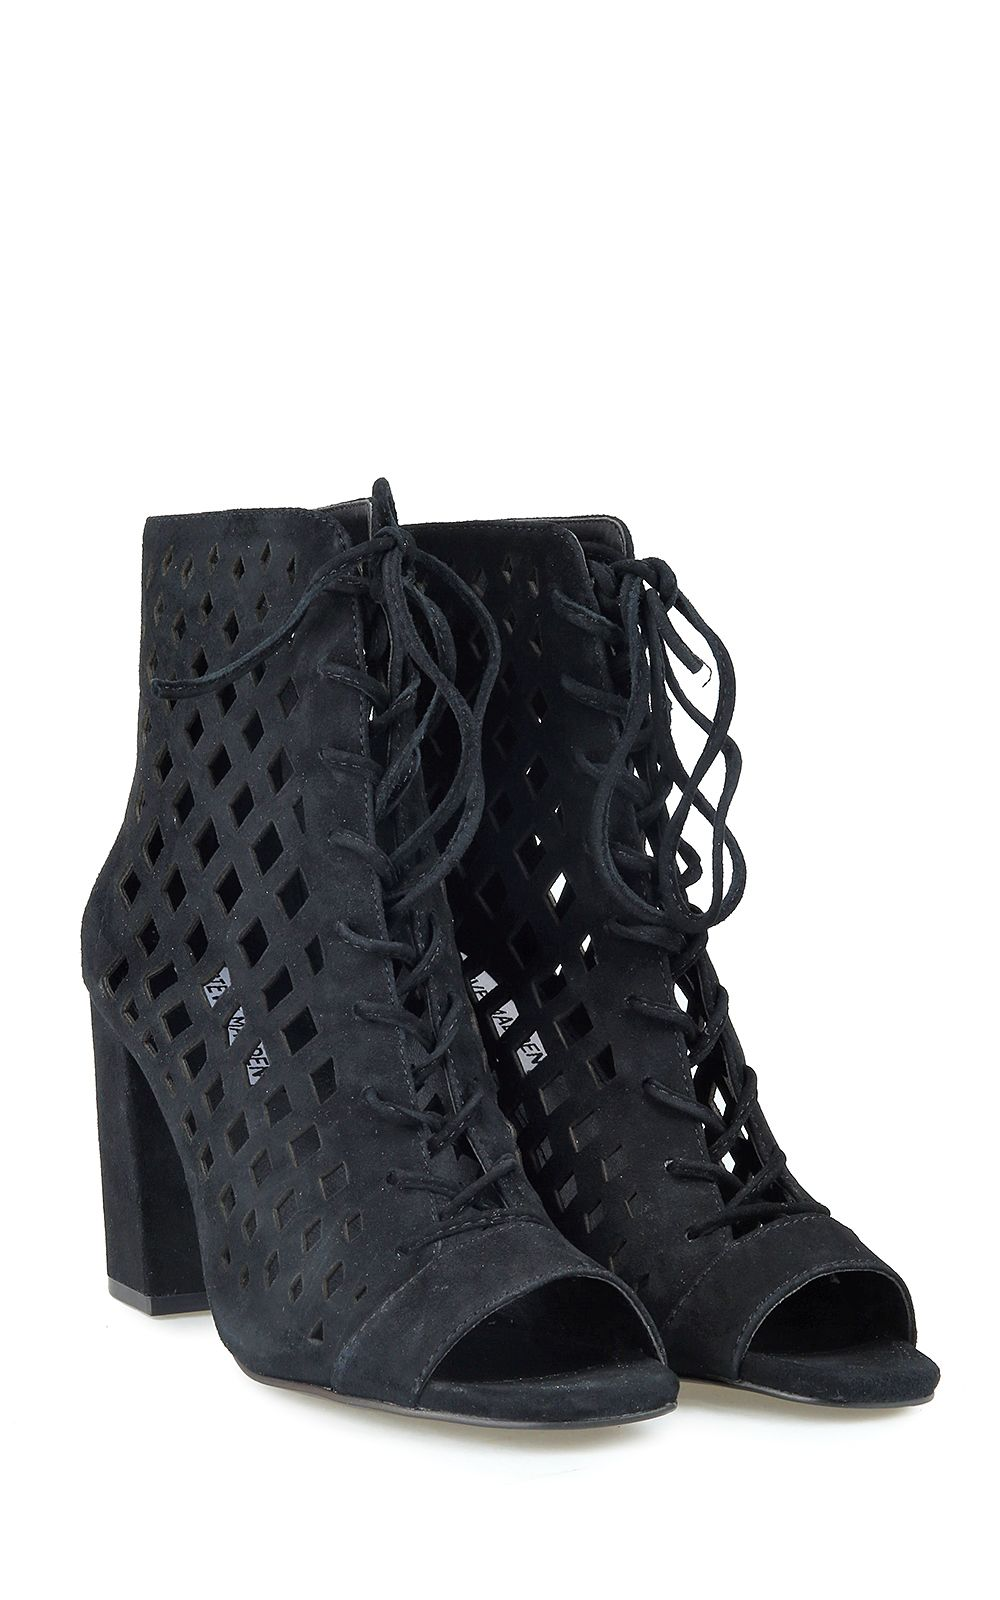 Steve Madden Denay Suede Caged Ankle-boots